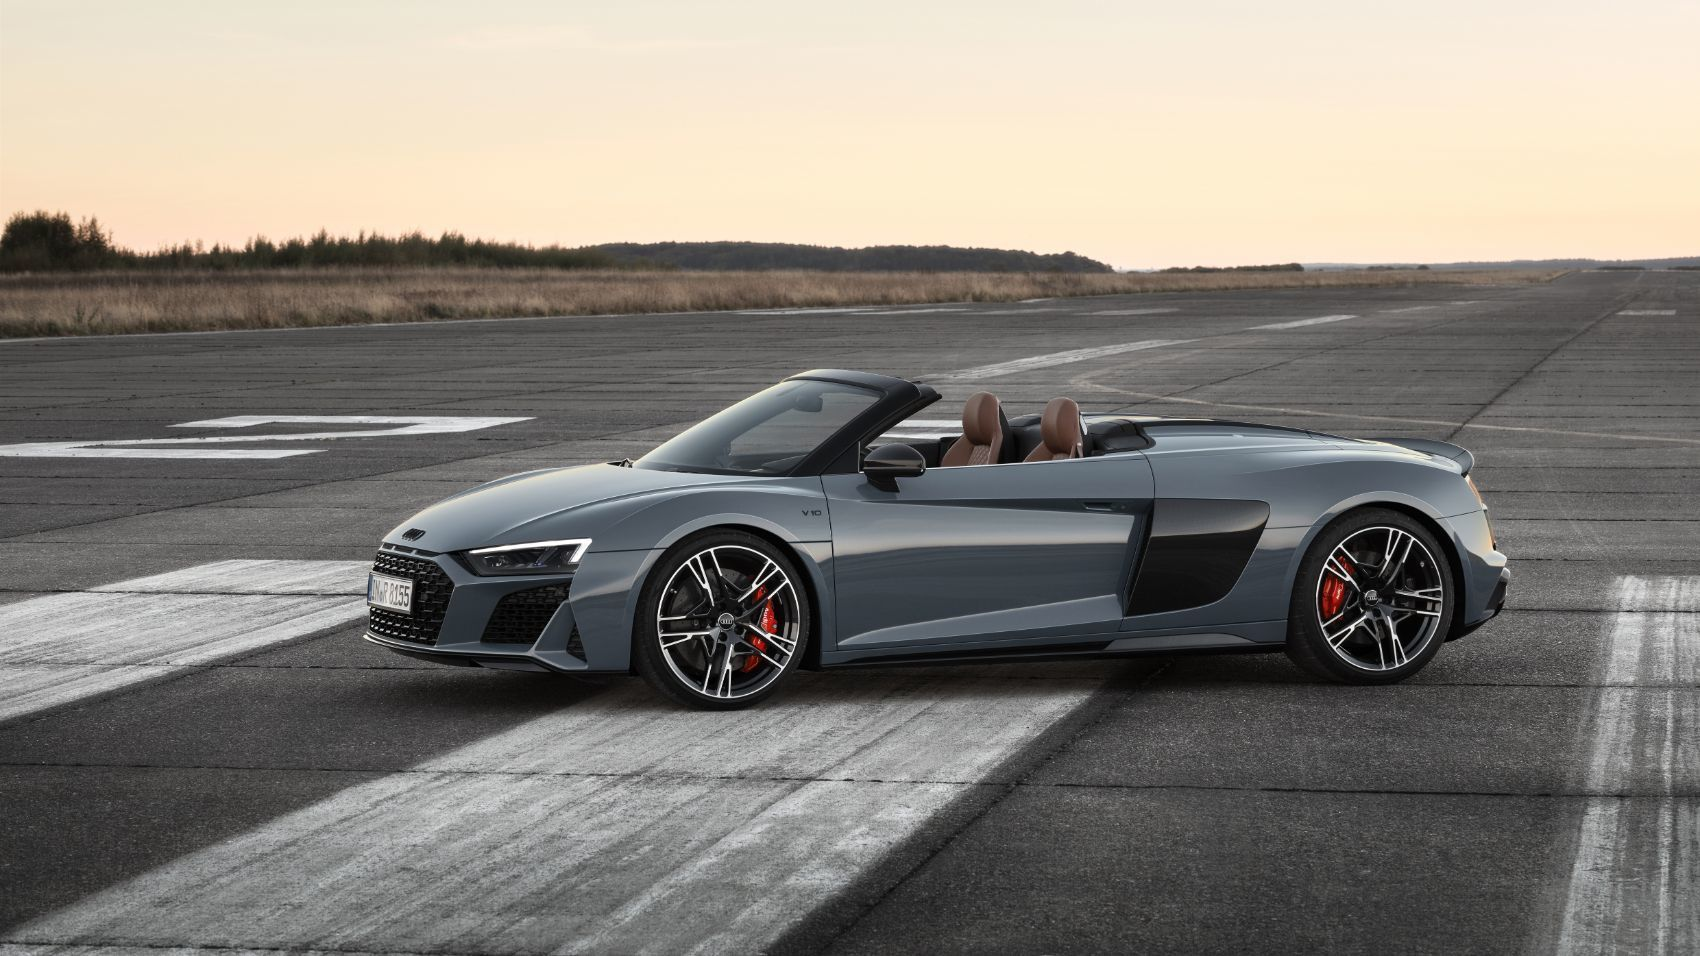 2020 Audi R8 V10 Spyder Rumors And Release Date In 2020 Audi R8 Convertible Audi R8 Spyder Audi R8 V10 Plus